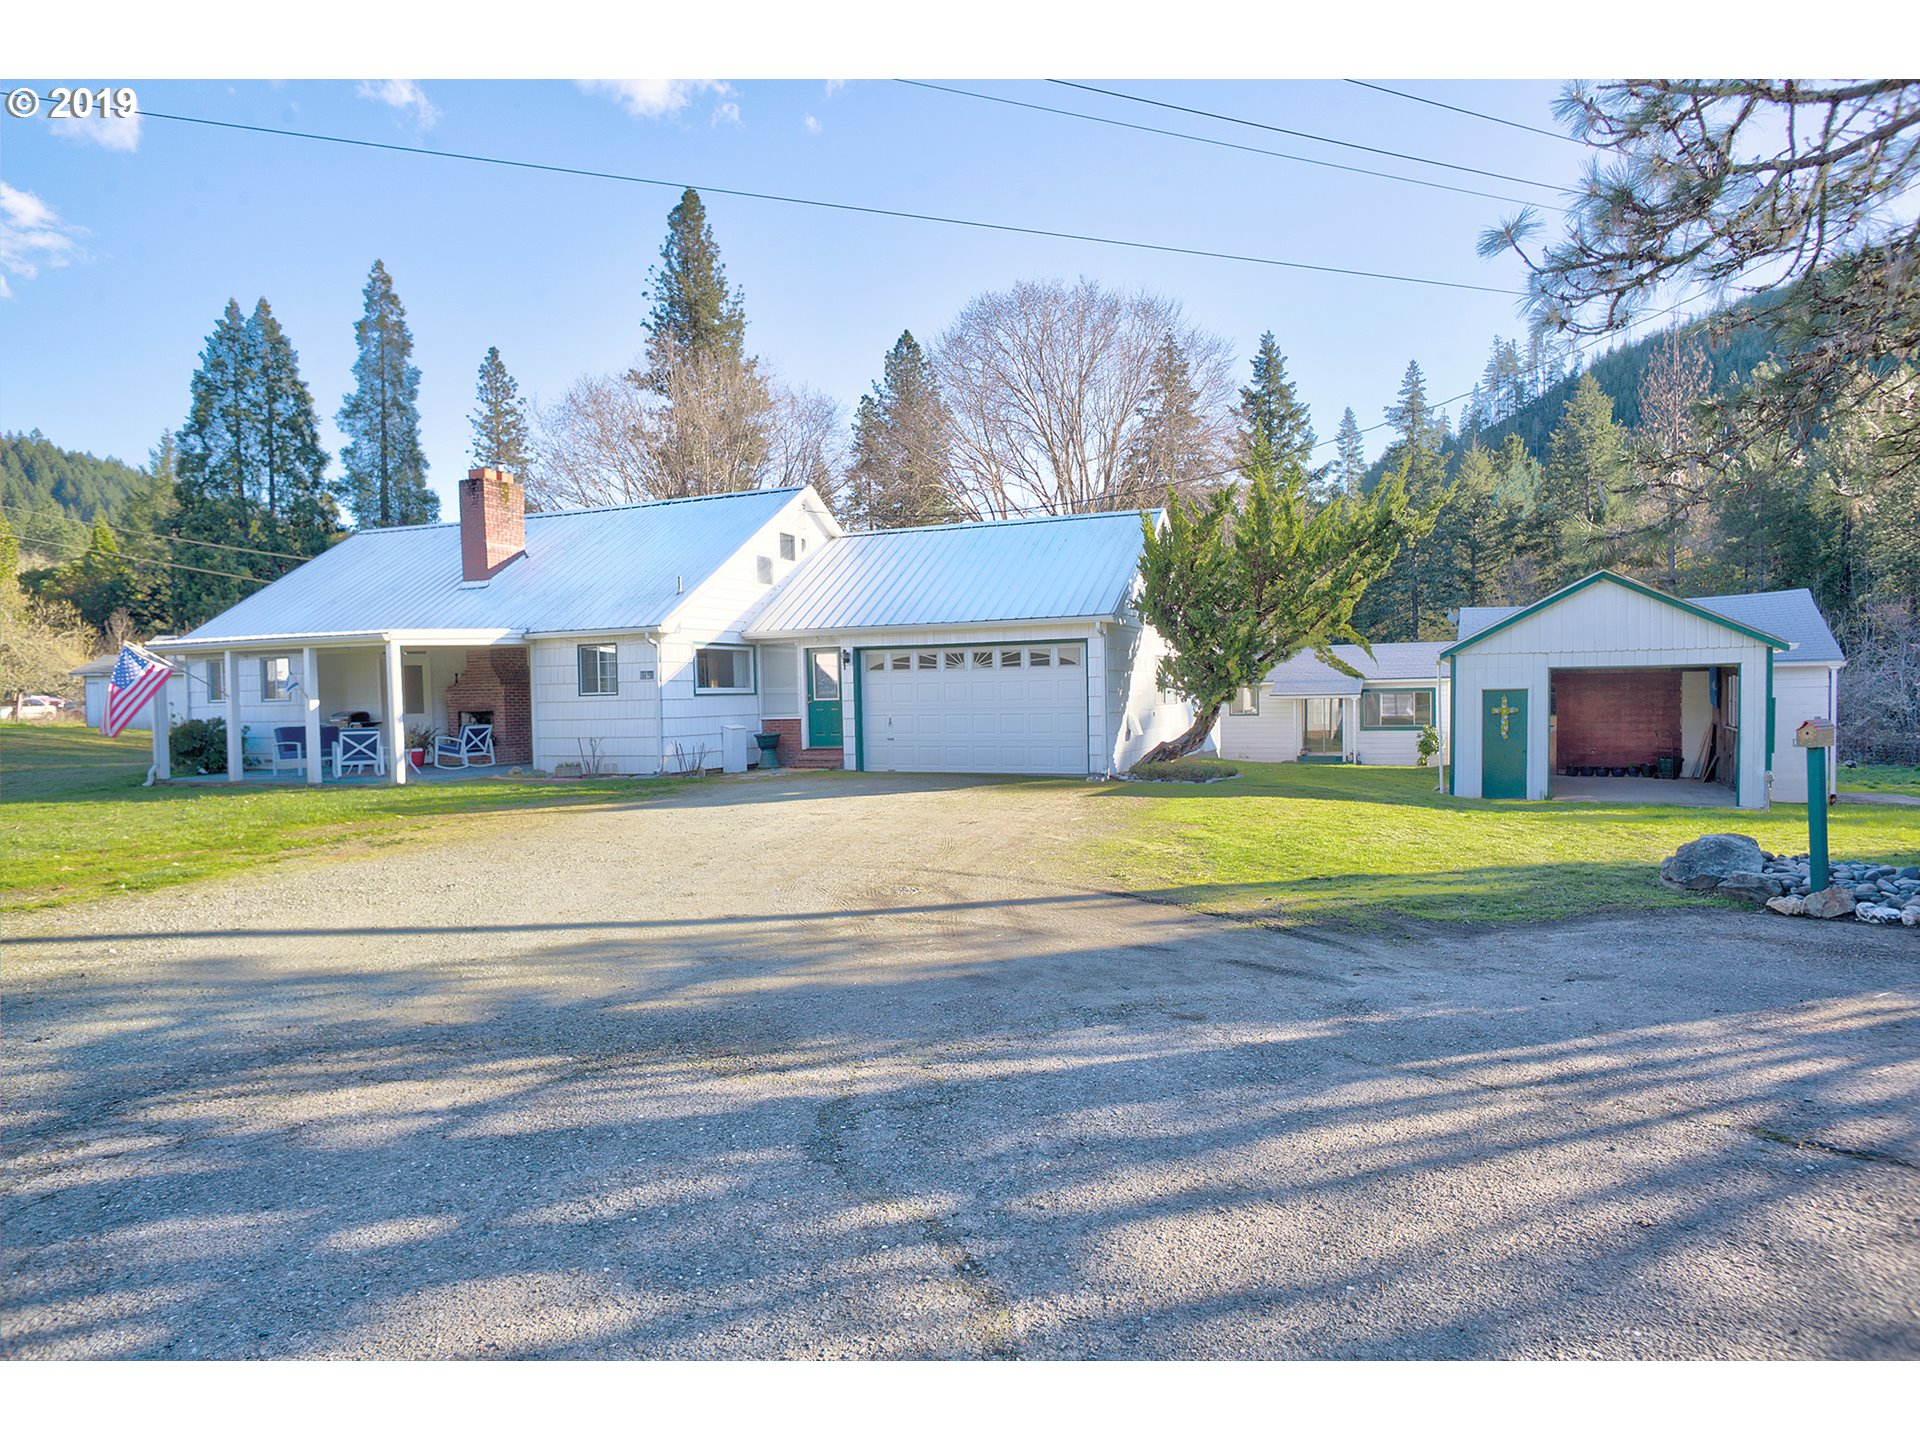 Sunny Valley, OR 4 Bedroom Home For Sale